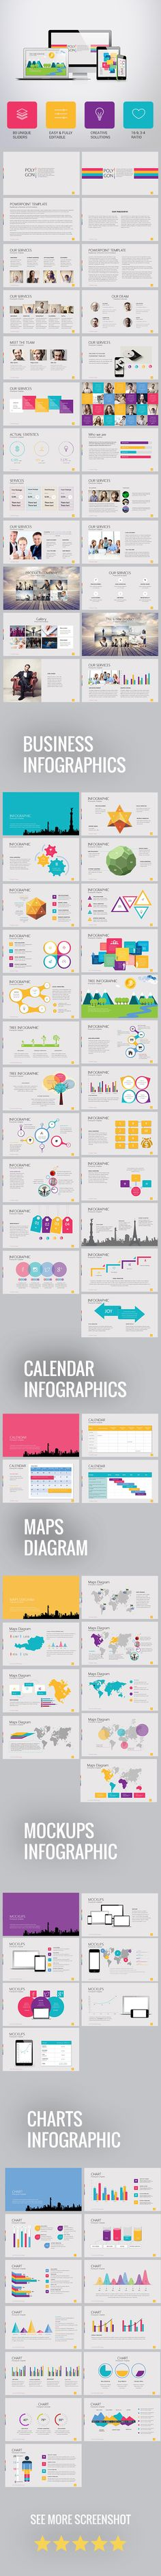 23 best business presentation templates images on pinterest polygon presentation template for business powerpoint templates cheaphphosting Choice Image